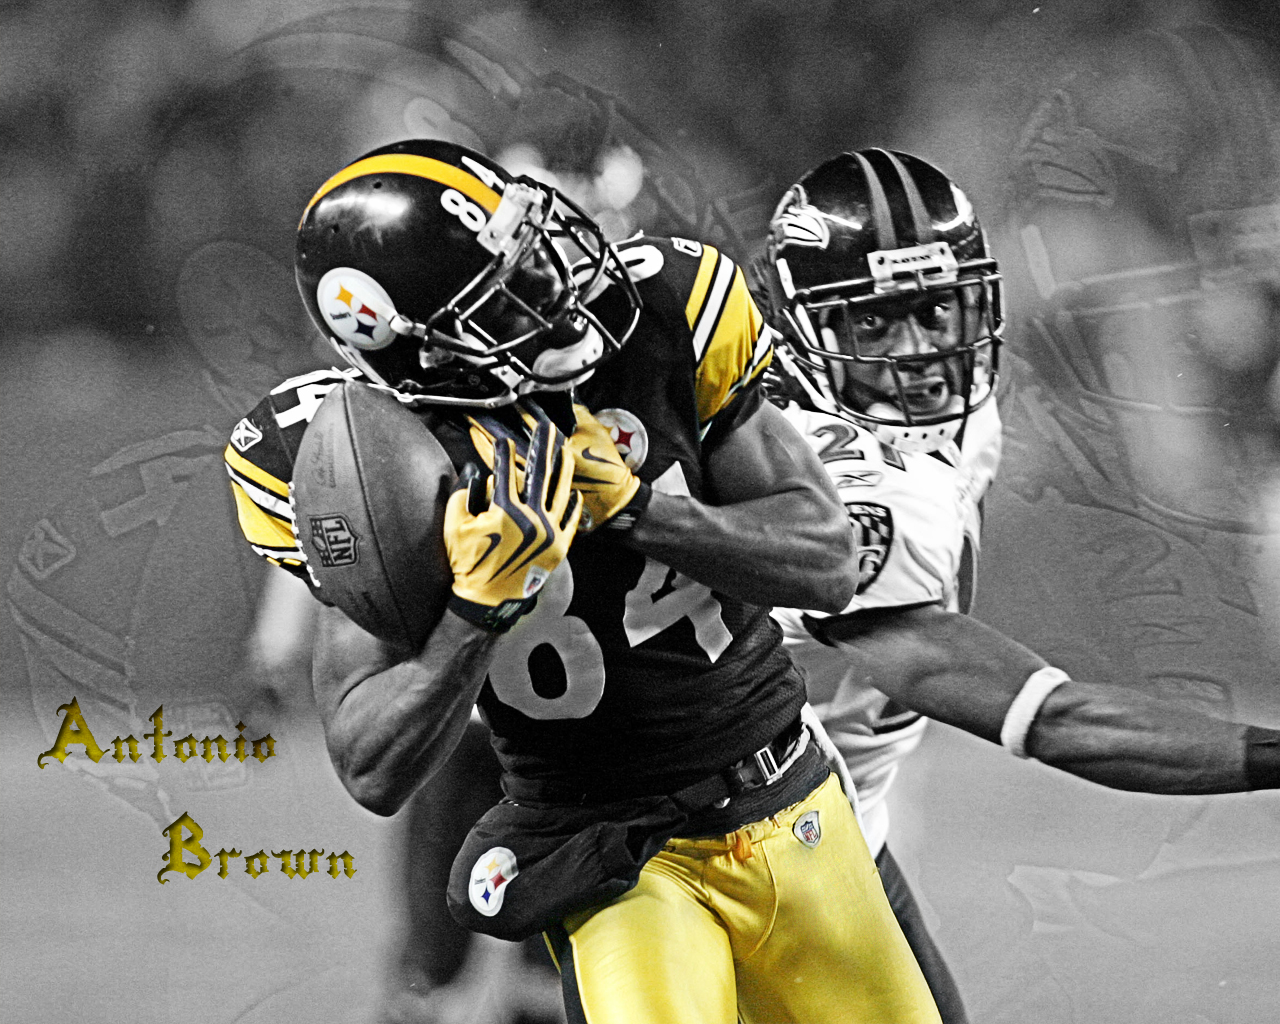 Antonio Brown Wallpaper 2013 Images Pictures   Becuo 1280x1024